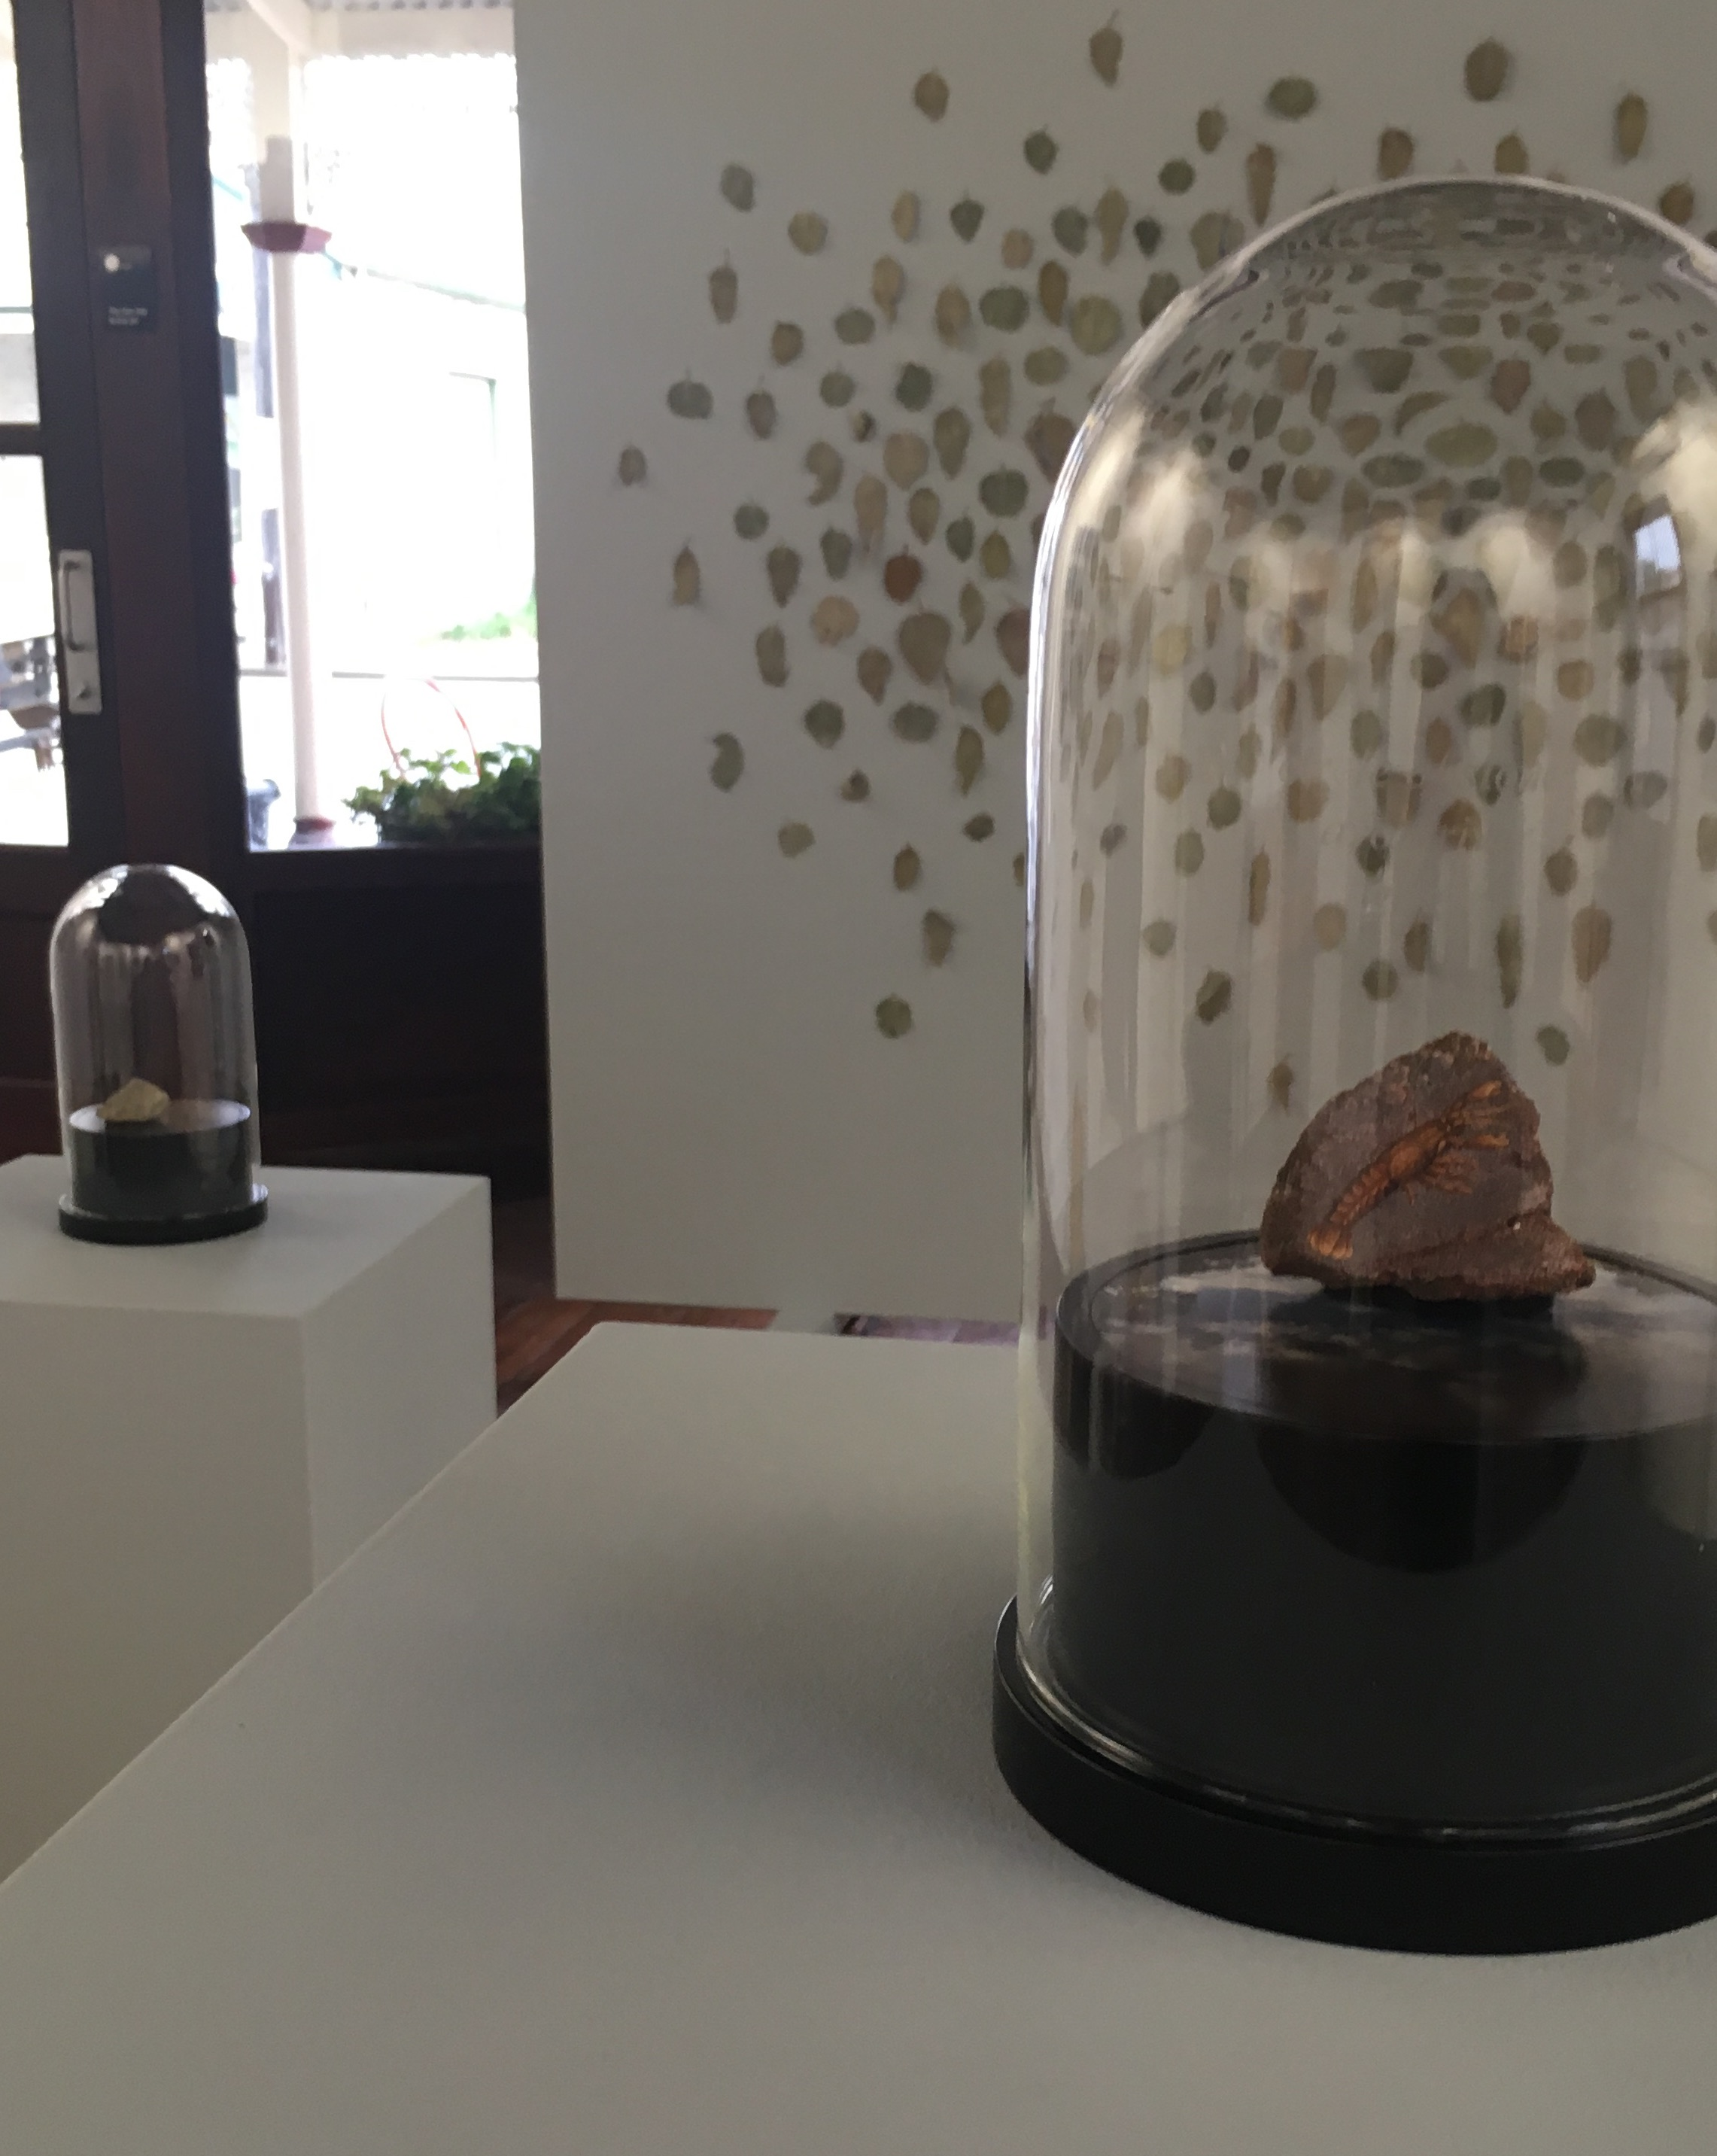 Installation View, Circle of Stones, Gallery 152, York, WA. In the foreground, circle of stones, avon river, gilgie,  River rock, gouache, colour photograph on dibond, wooden base and etched glass dome 15d x 27h cm. 2017-18.